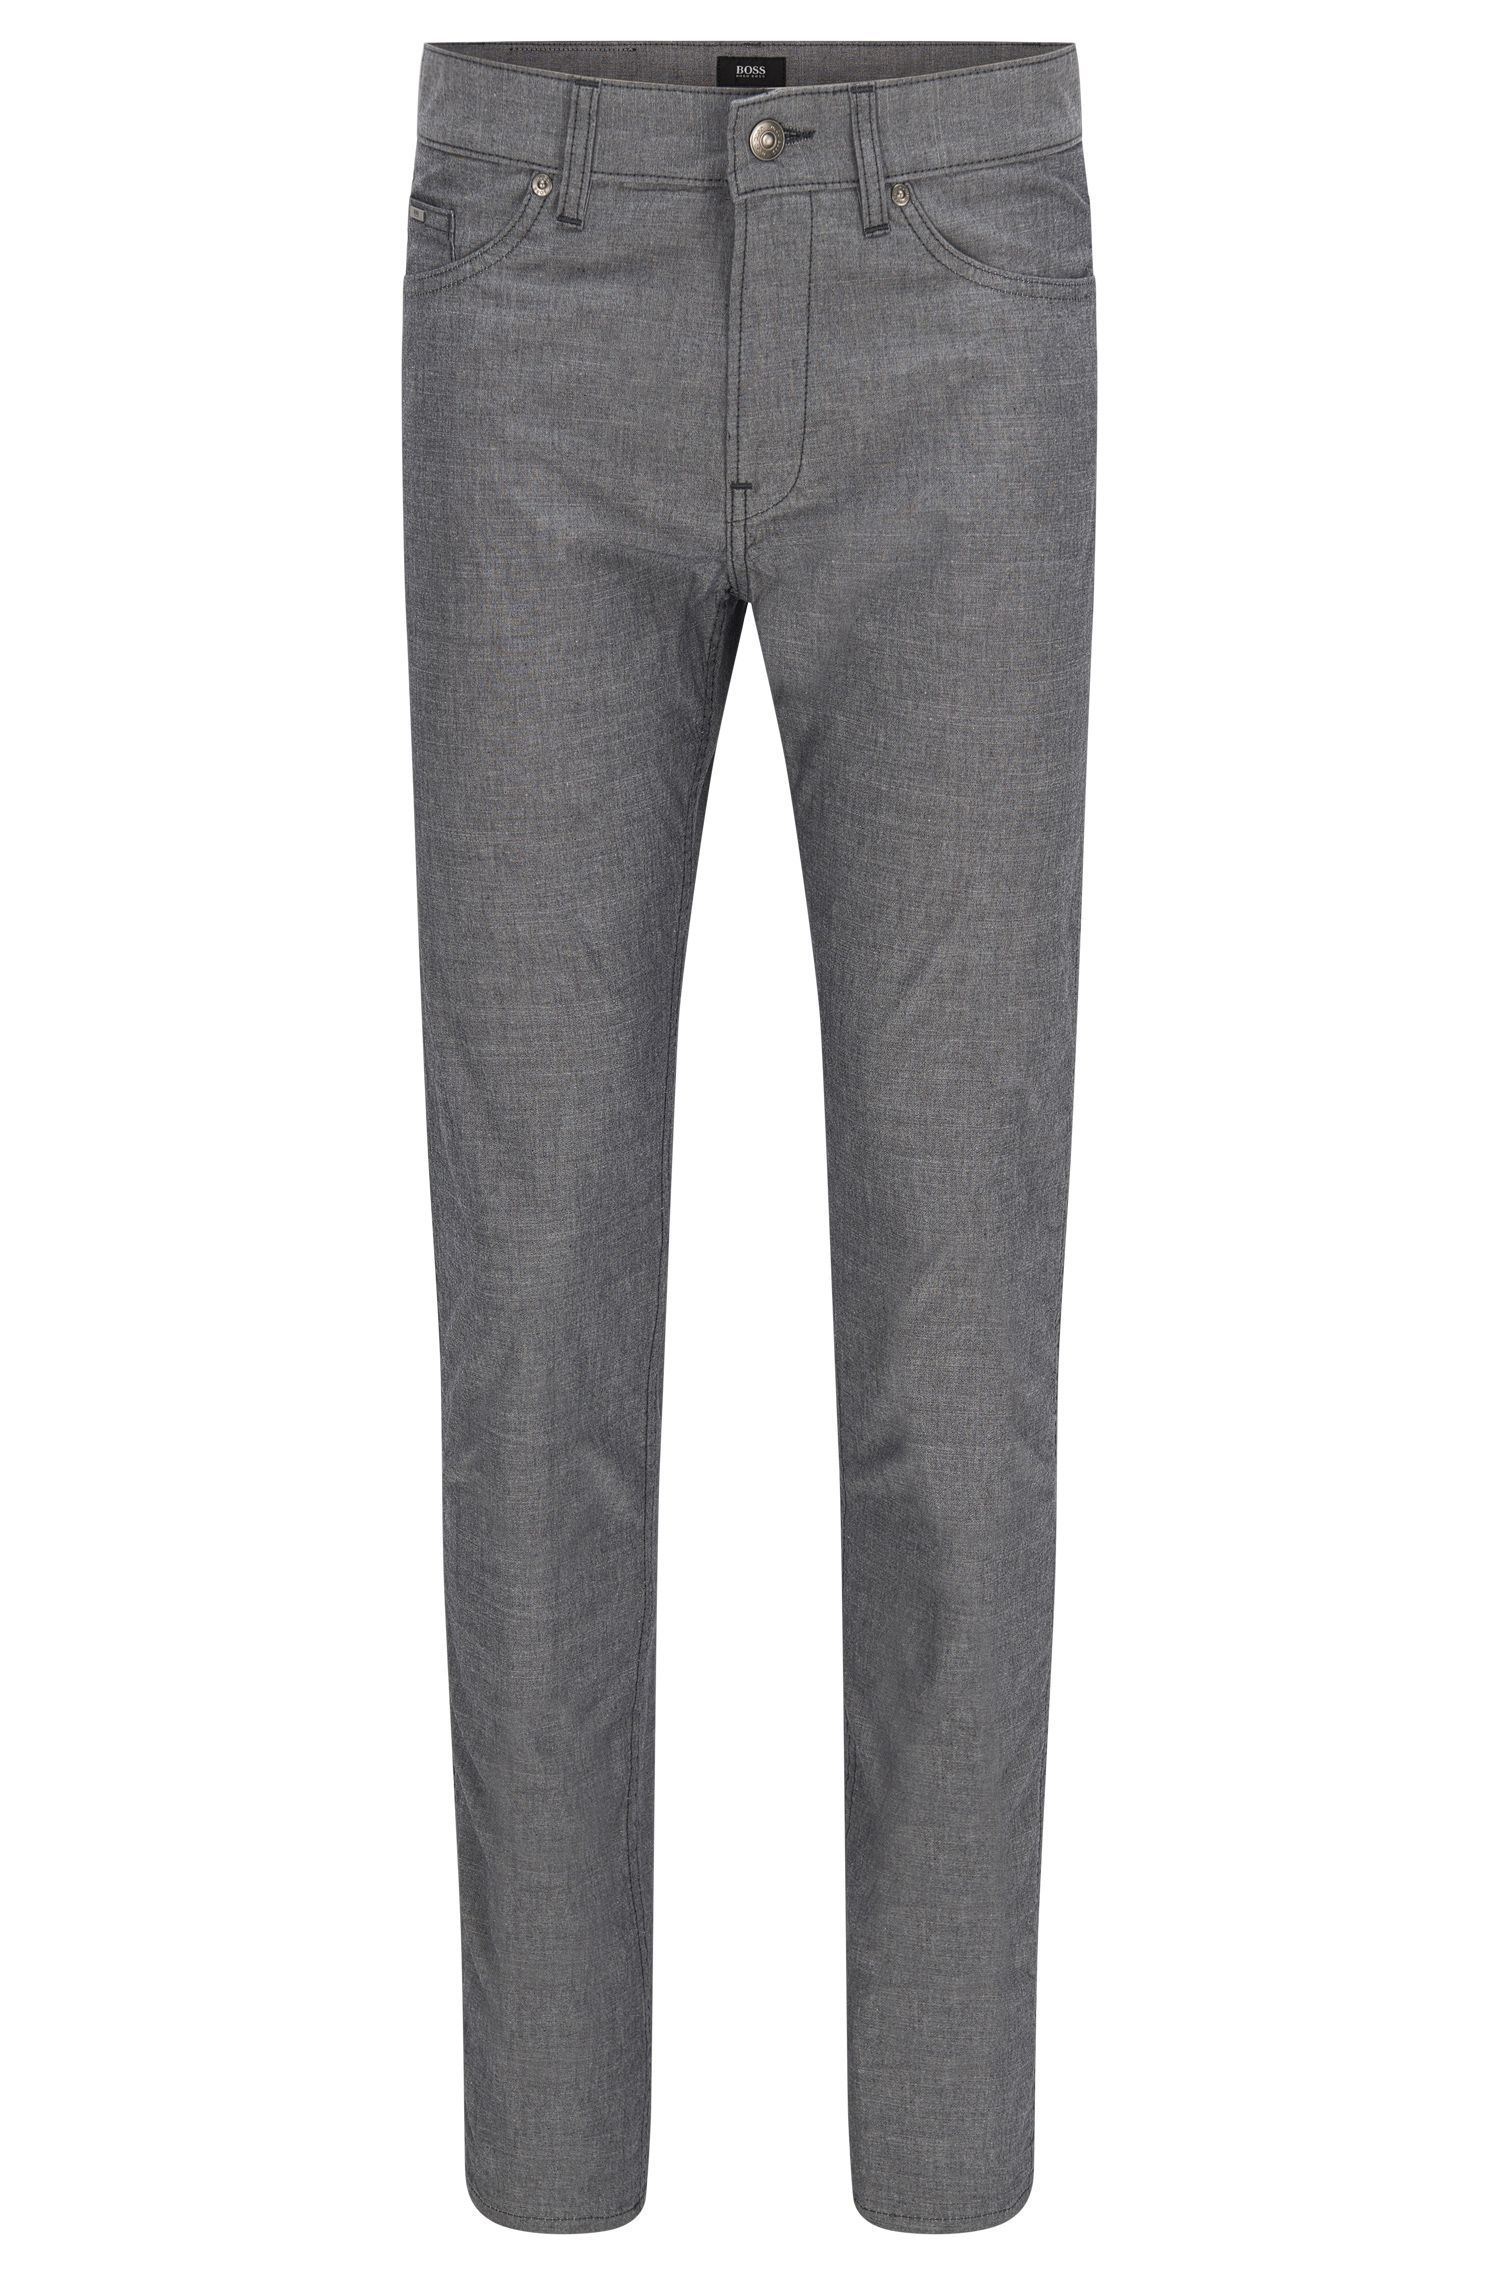 'Delaware'   Slim Fit, Chambray Stretch Cotton Jeans